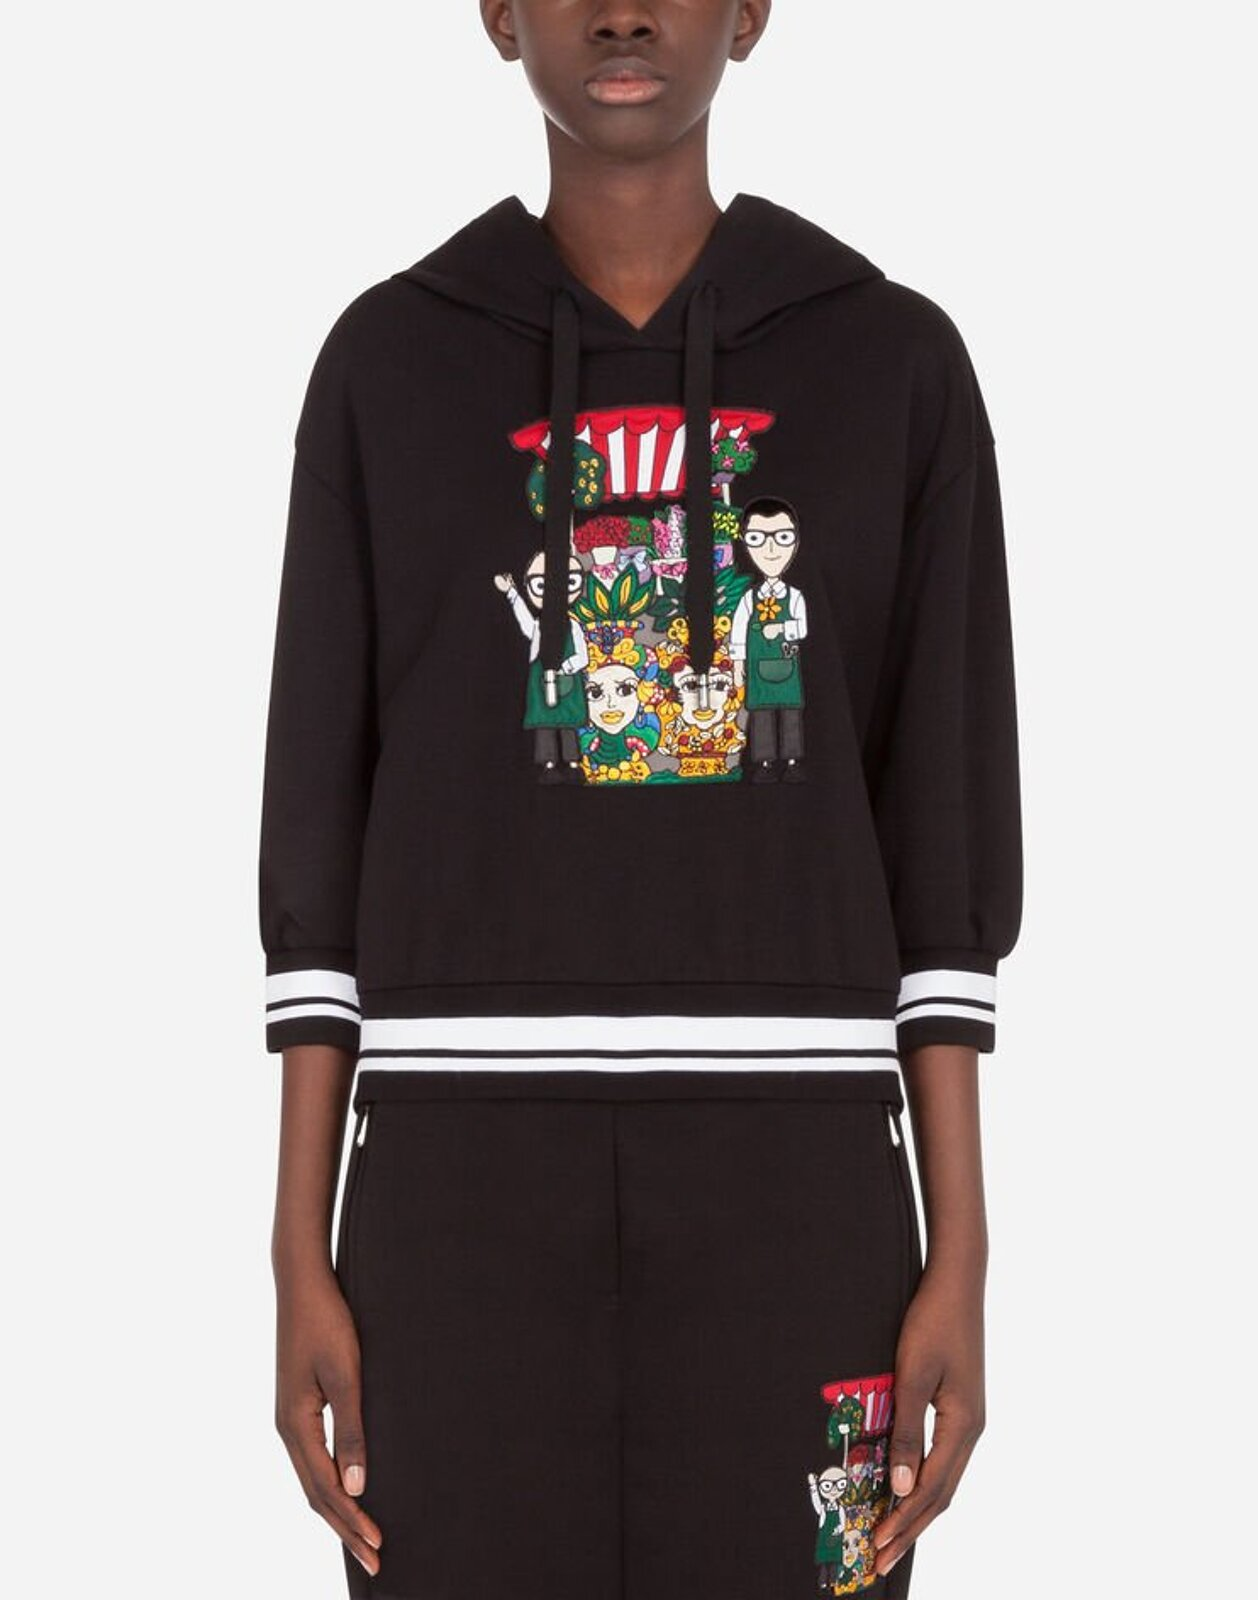 Jersey Sweatshirt With Dg Family Patch - Dolce & Gabbana